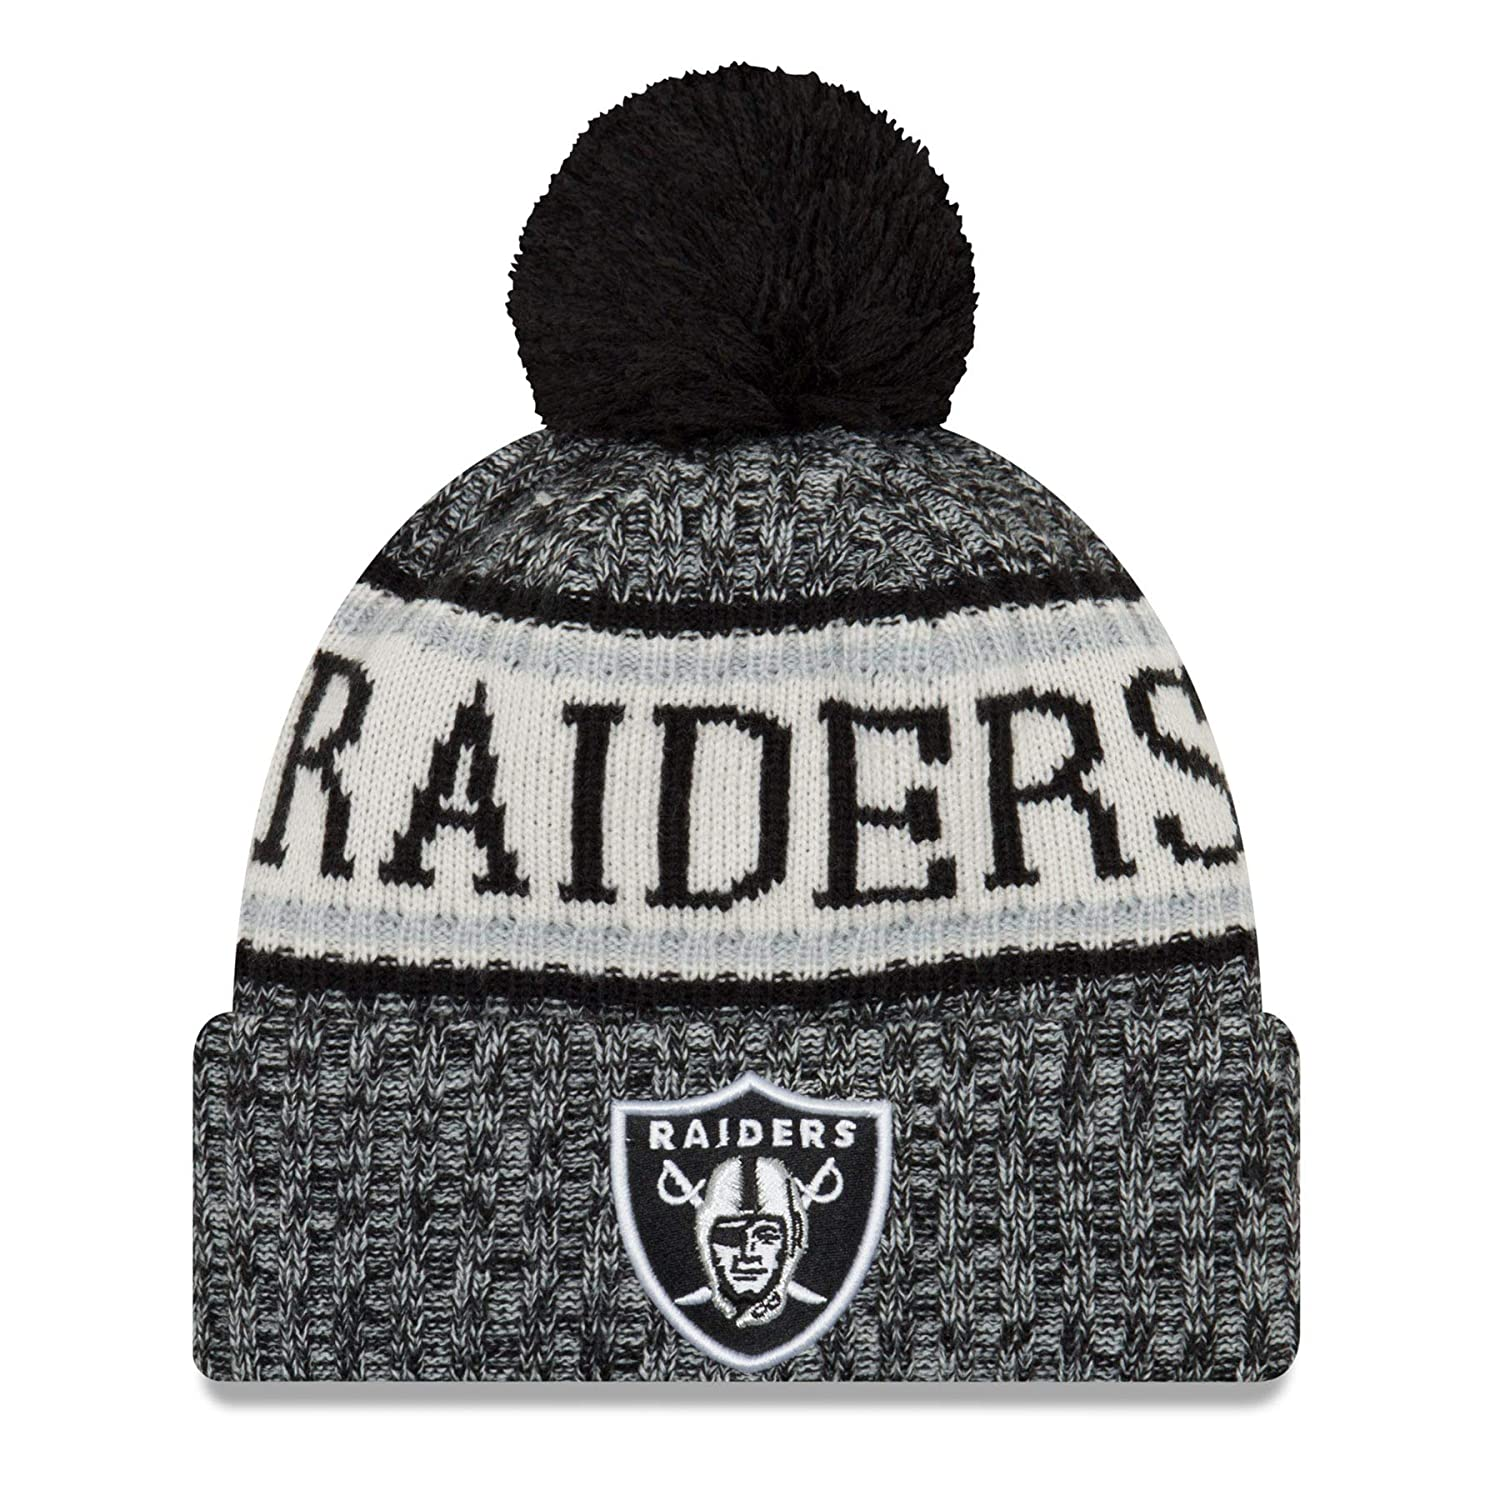 11cff95f7d6ee8 Sideline New England Patriots: Amazon.co.uk: Sports & Outdoors